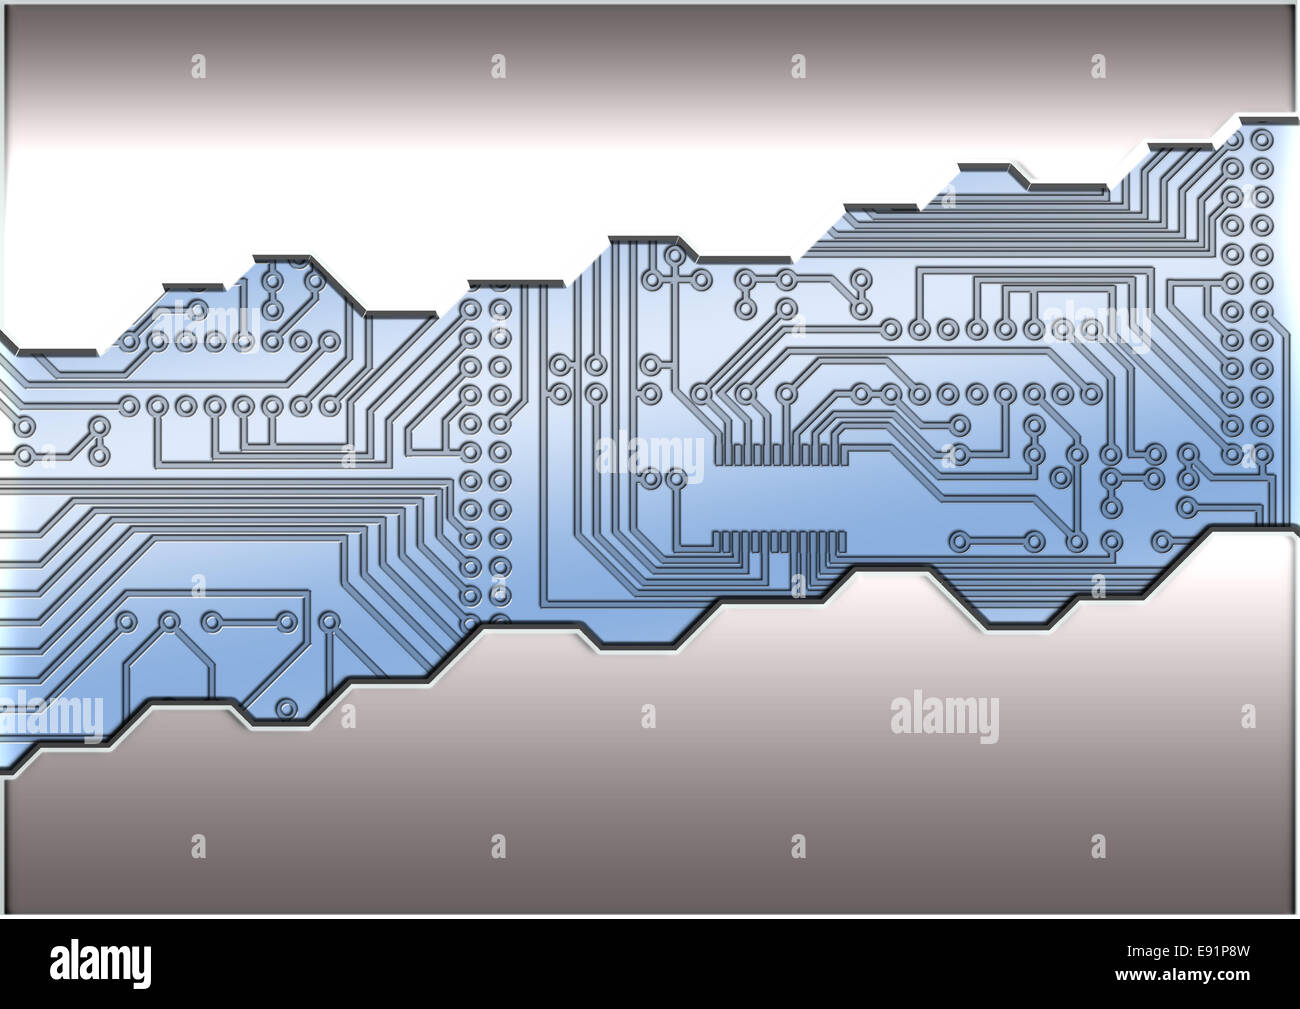 Steel Stencil Stock Photos Images Alamy Circuit Board Letters Vector Colourbox Background Image